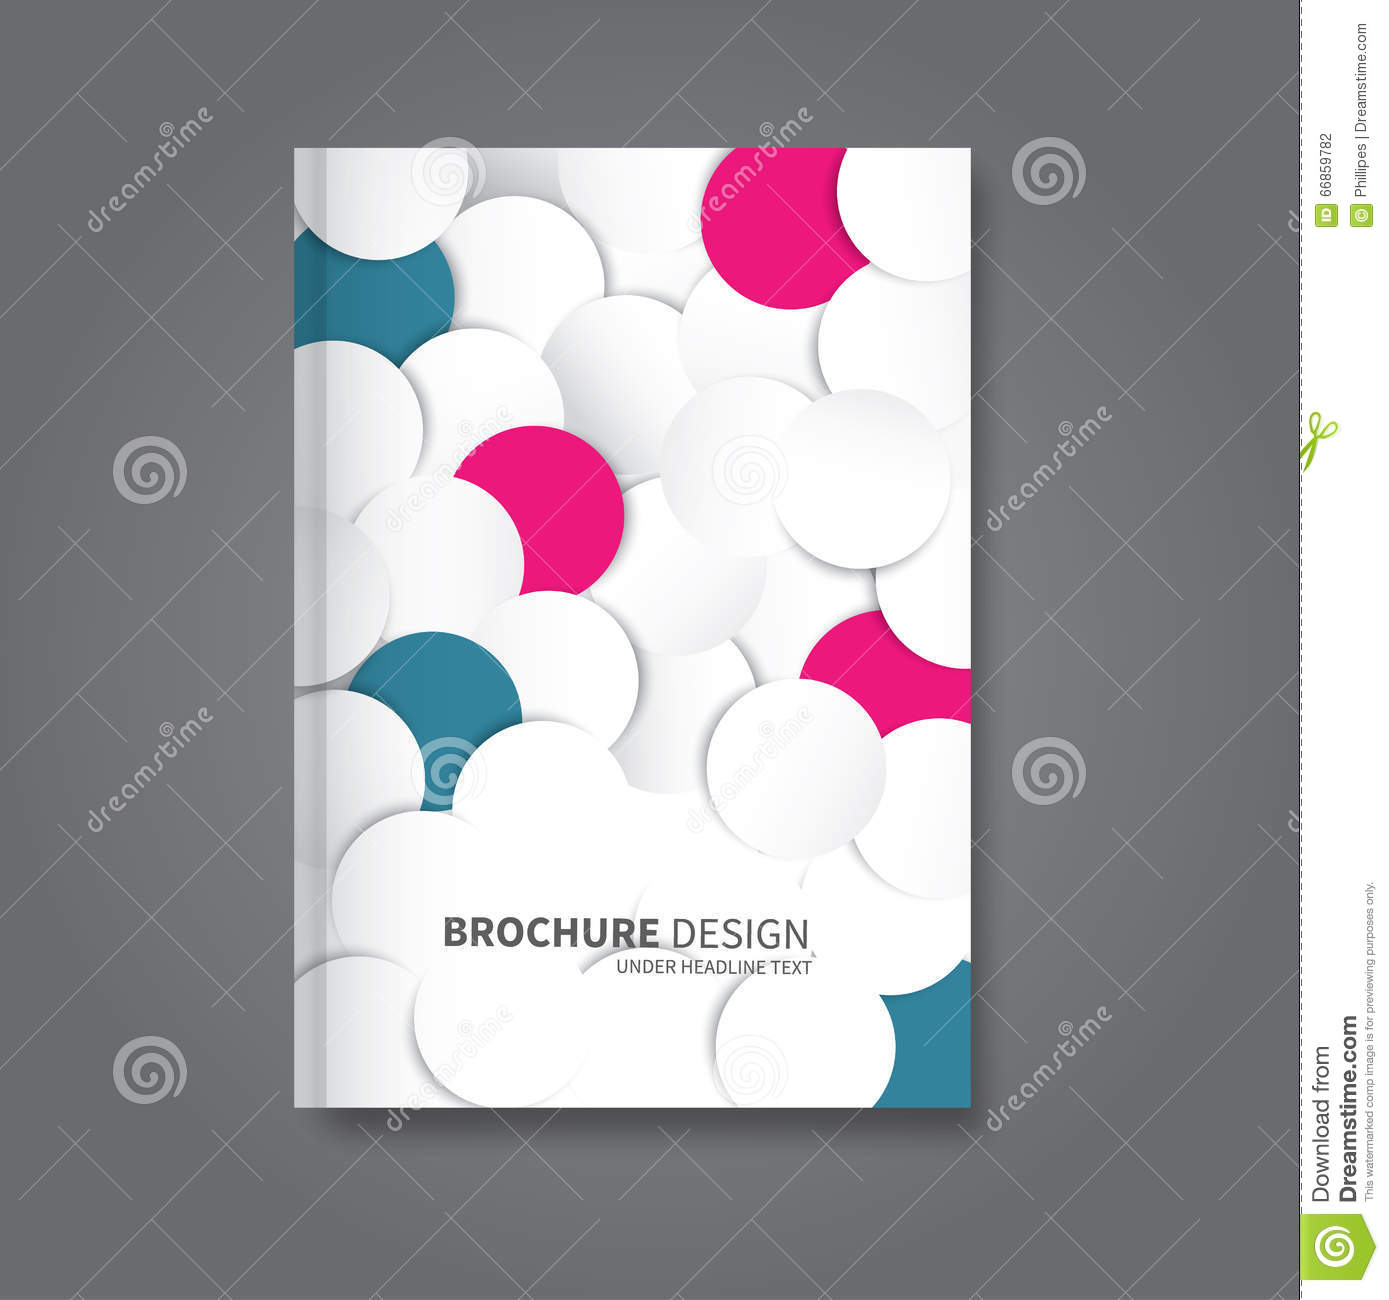 Cool Book Cover Vector : Book cover design template stock vector illustration of